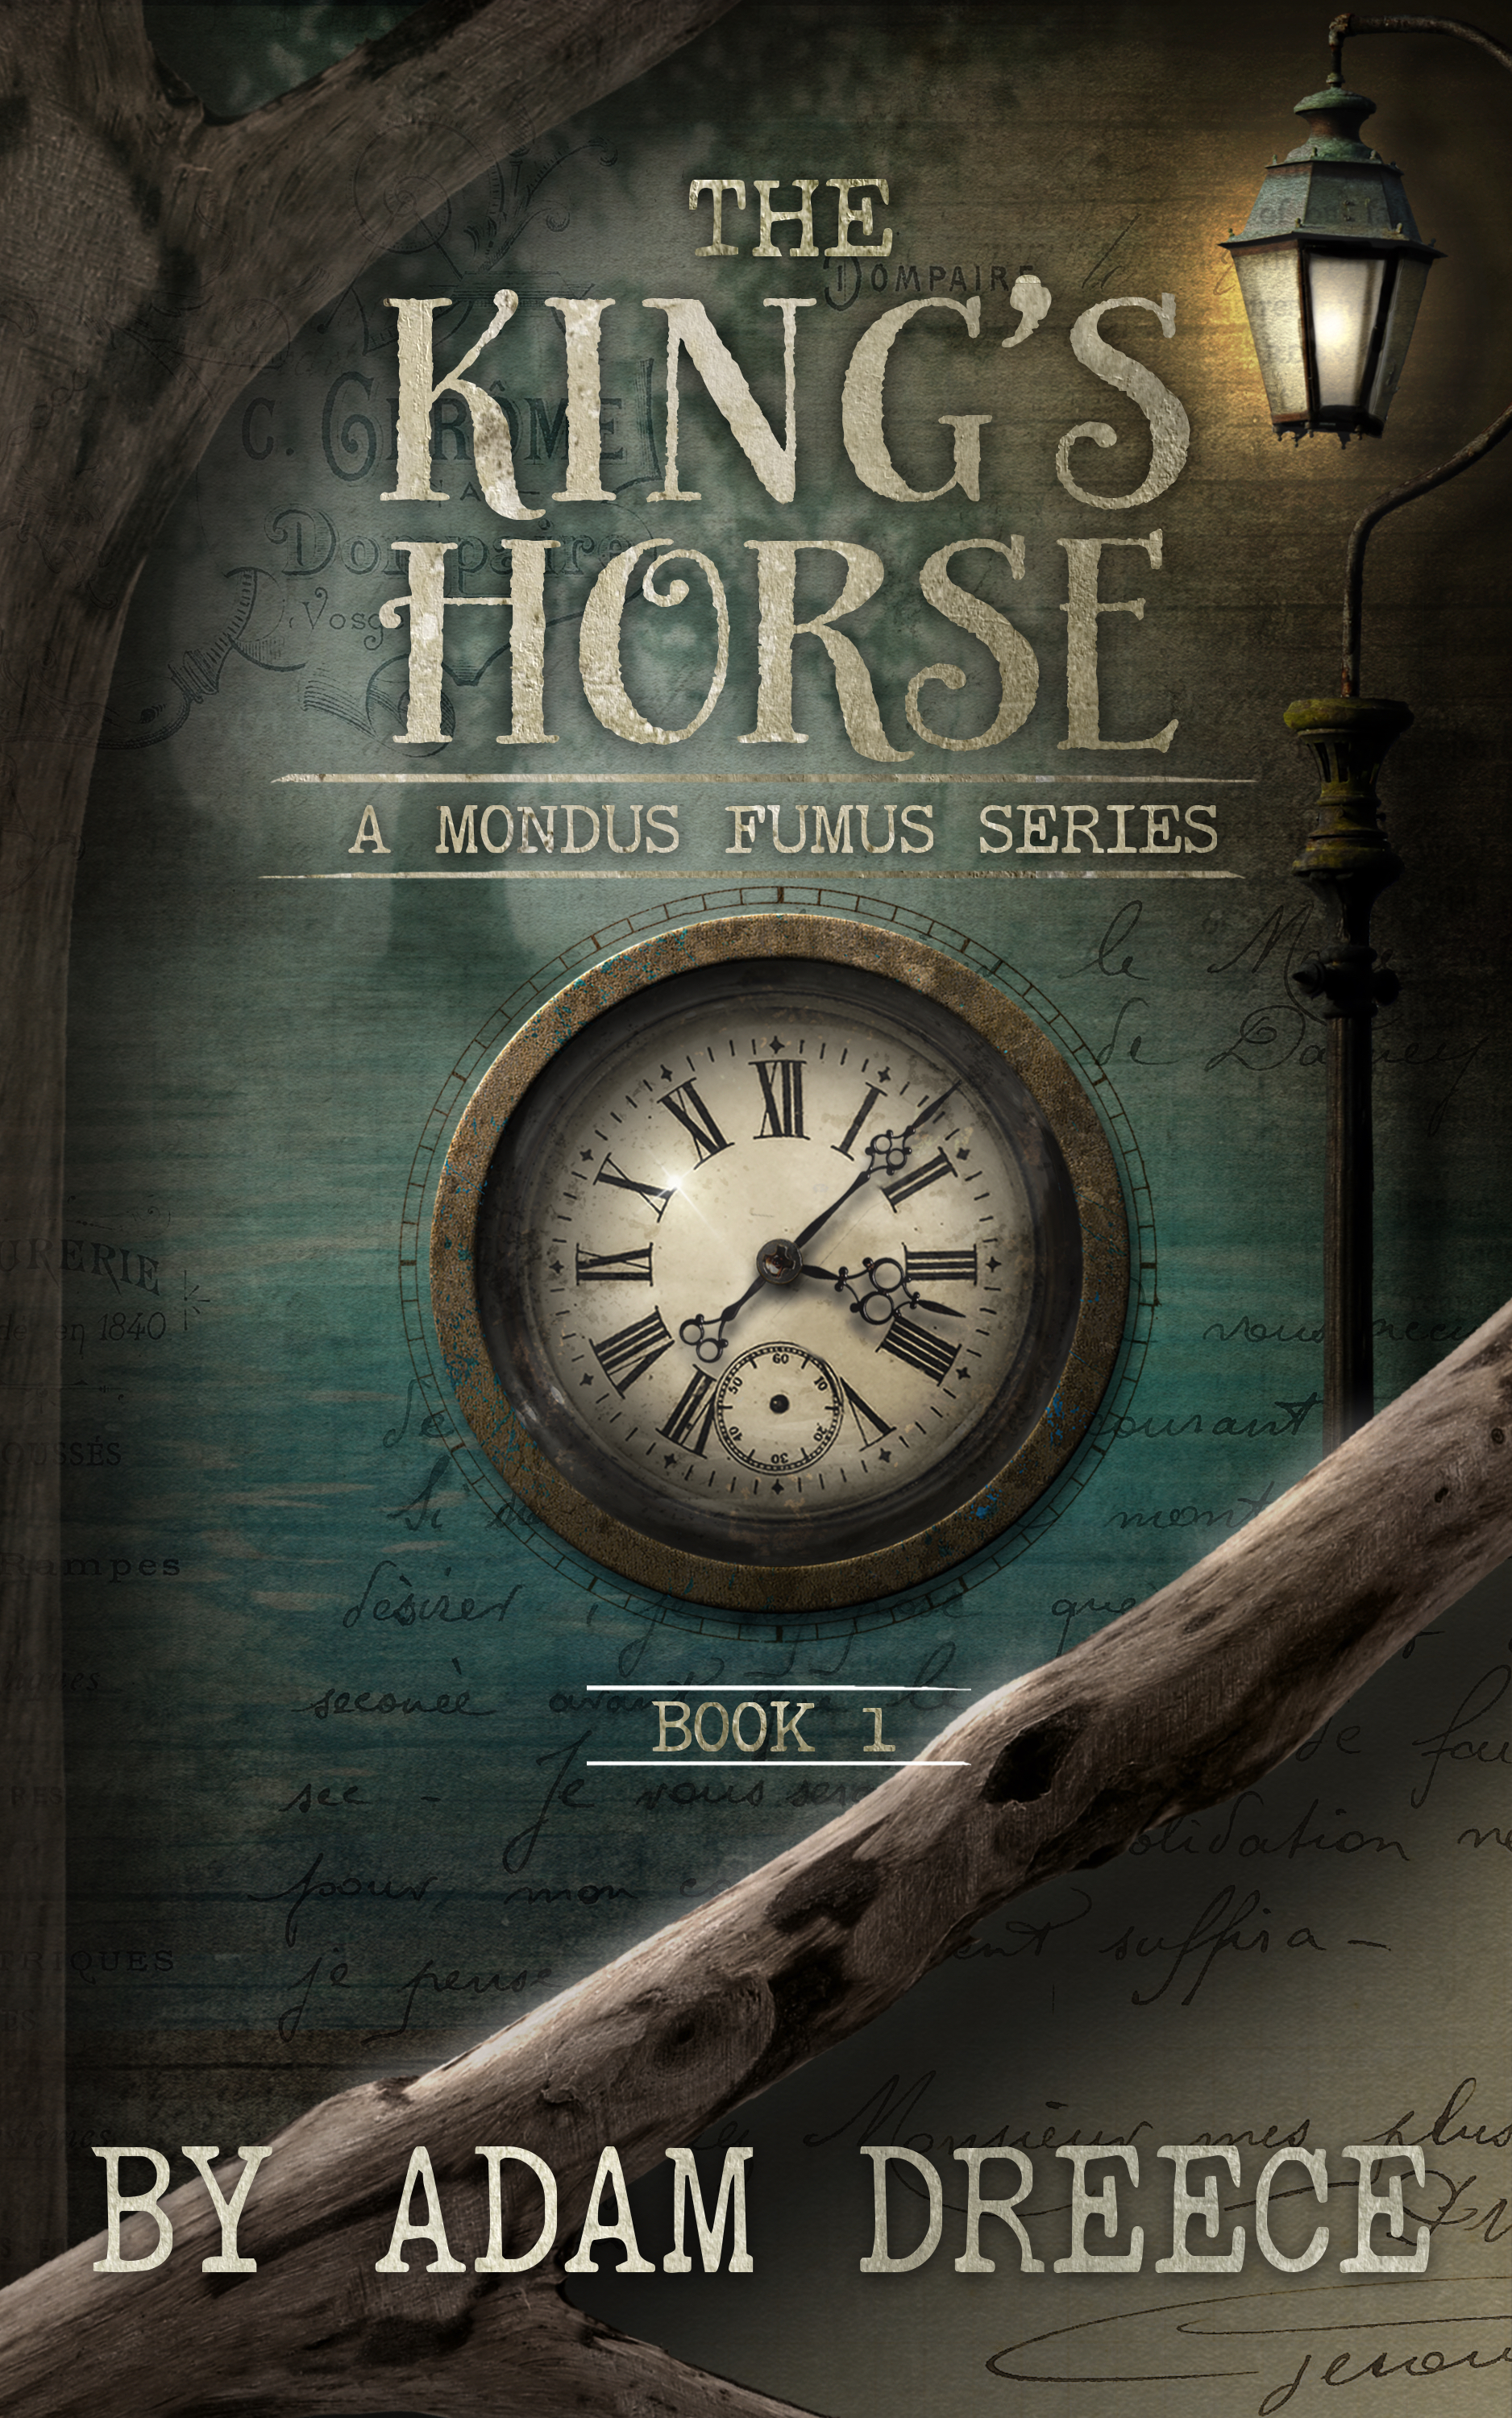 The King's Horse - Book 1.jpg